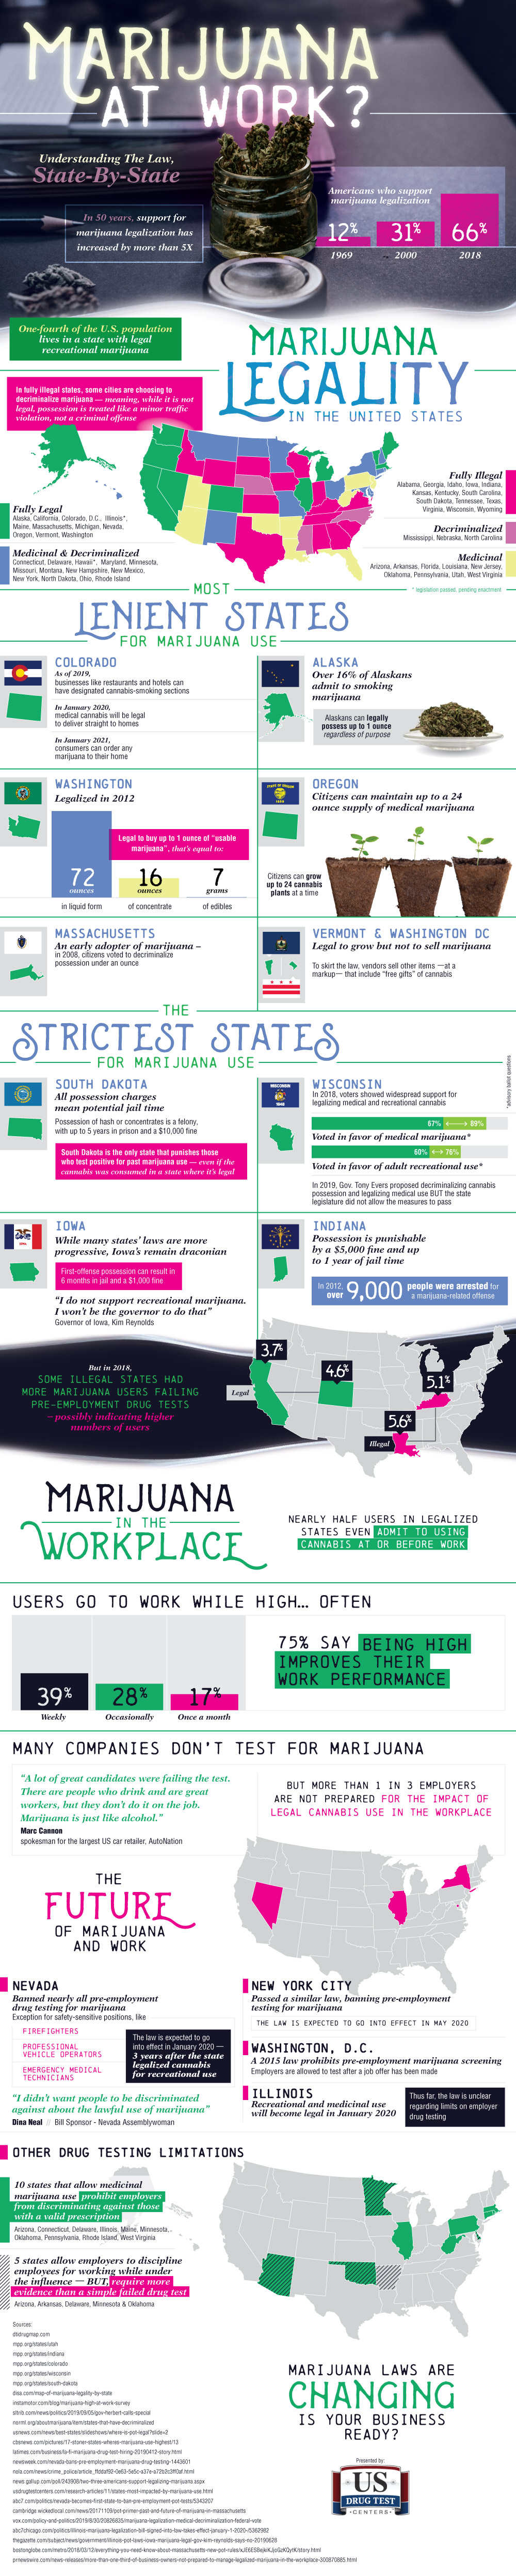 Marijuana Laws State-by-State